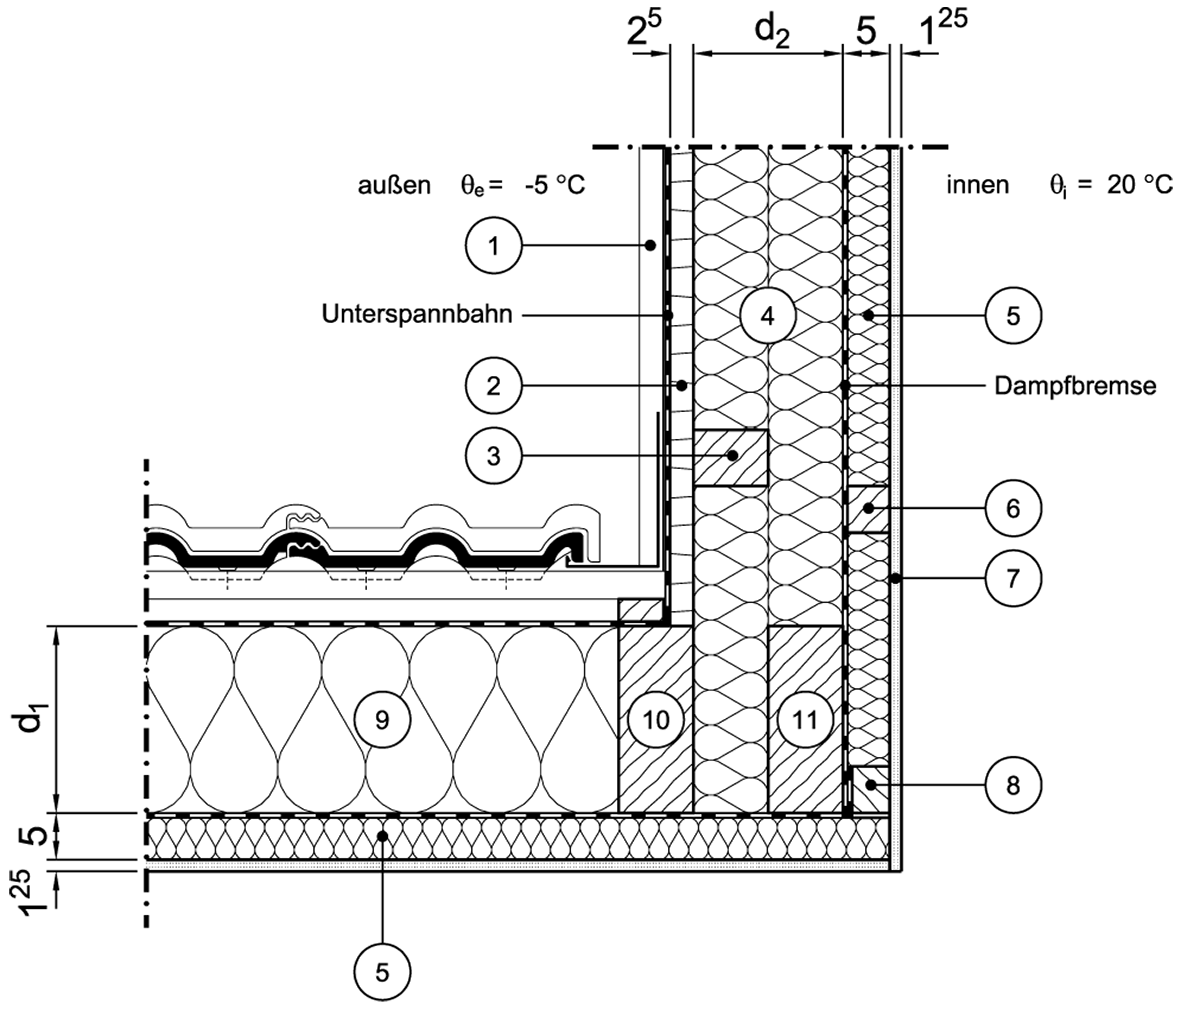 [VZ_1112] Copy 2 Of Gs401 Speaker Crossover Schematic 4